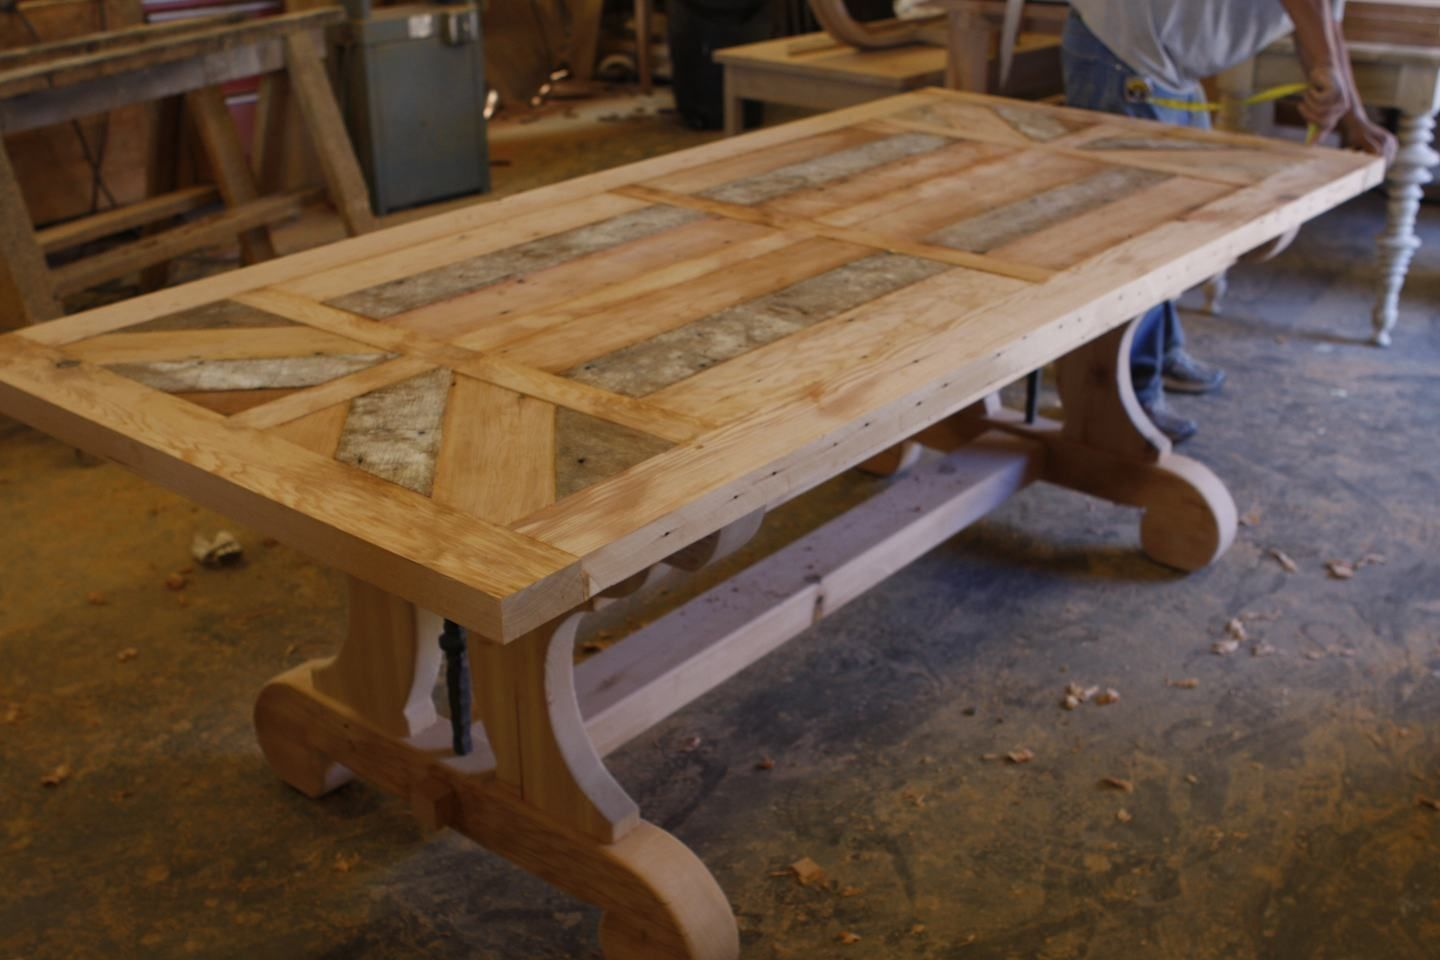 Merveilleux Reclaimed Barn Wood Furniture | Tables | Pinterest | Barn Wood Furniture,  Reclaimed Barn Wood And Wood Furniture